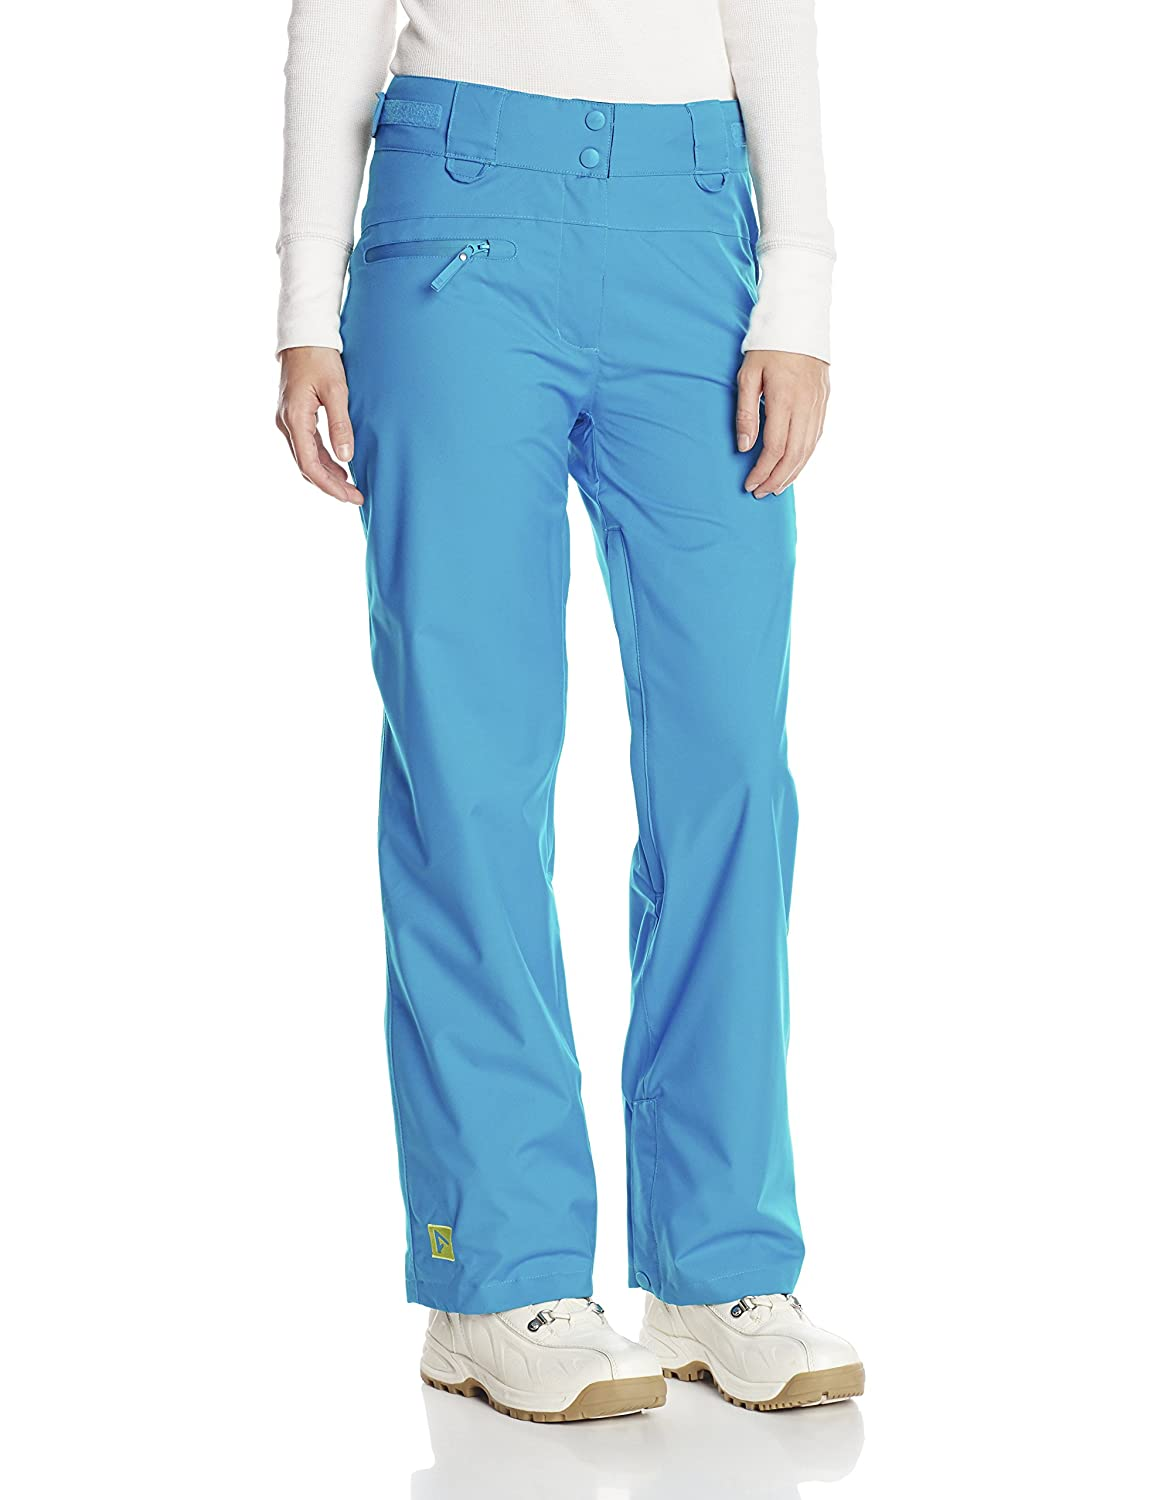 Image of Anakie Women's Aubrey 3-in-1 Pant Outdoor Clothing